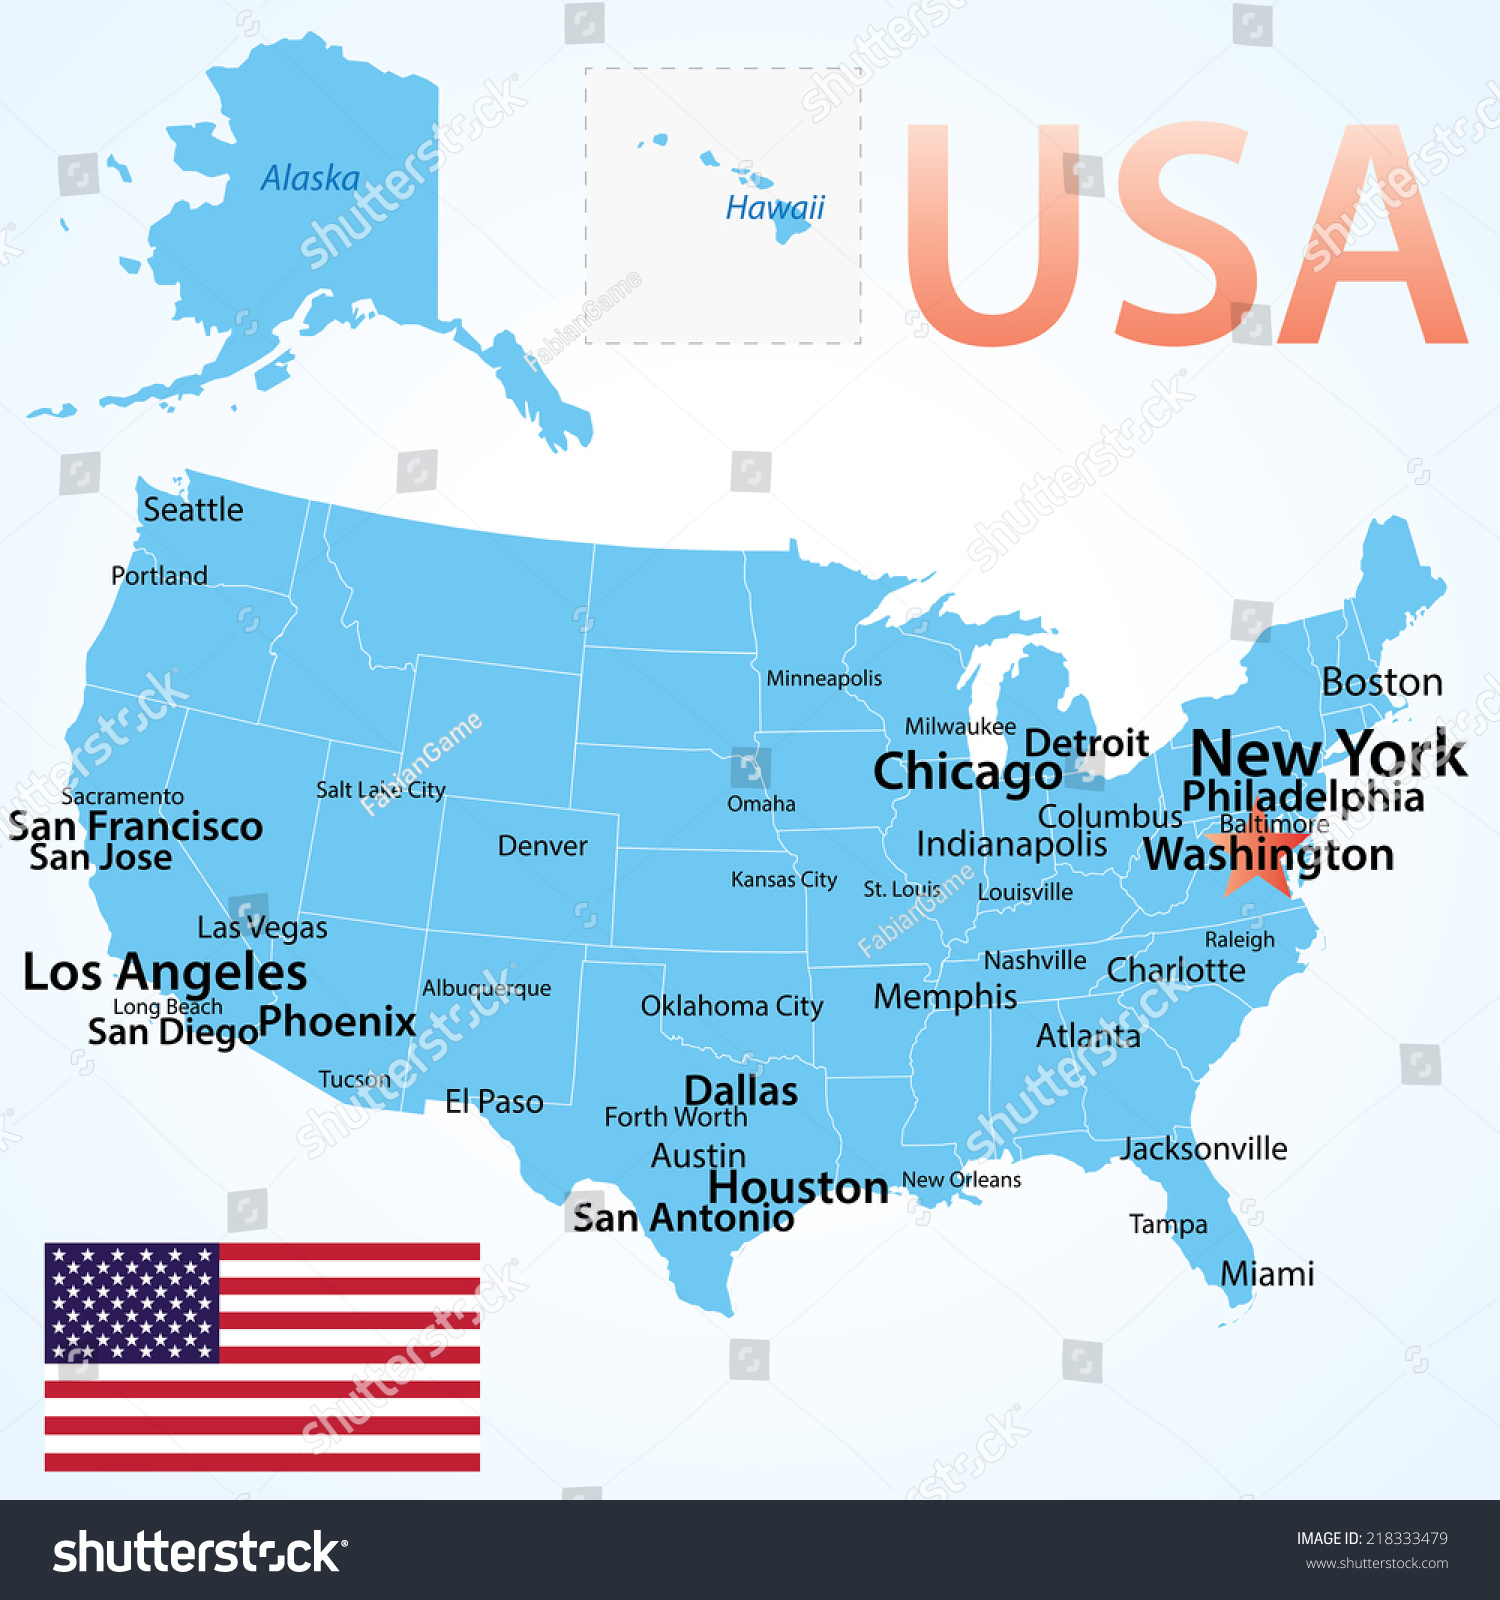 United States With Alaska And Hawaii Free Maps Free Blank Maps Us - Us map san francisco